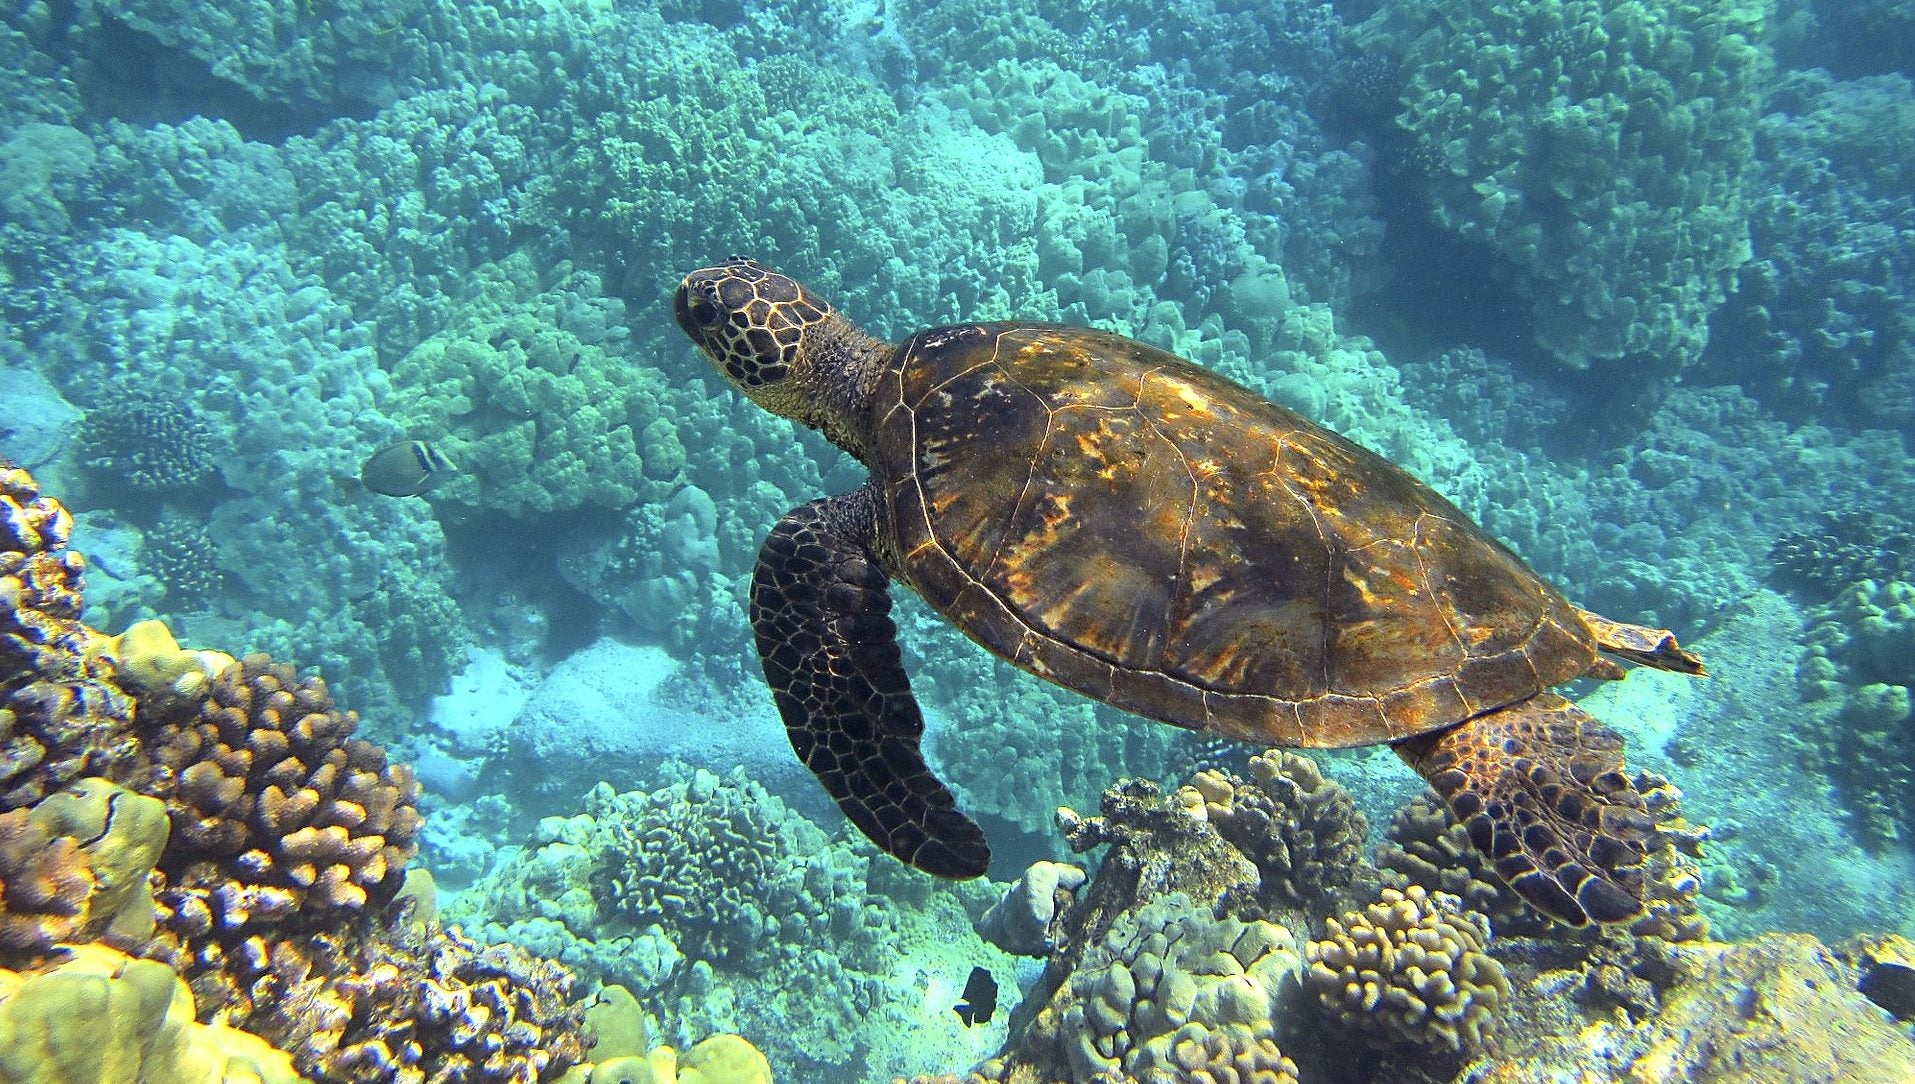 Why are sea turtles endangered reasons